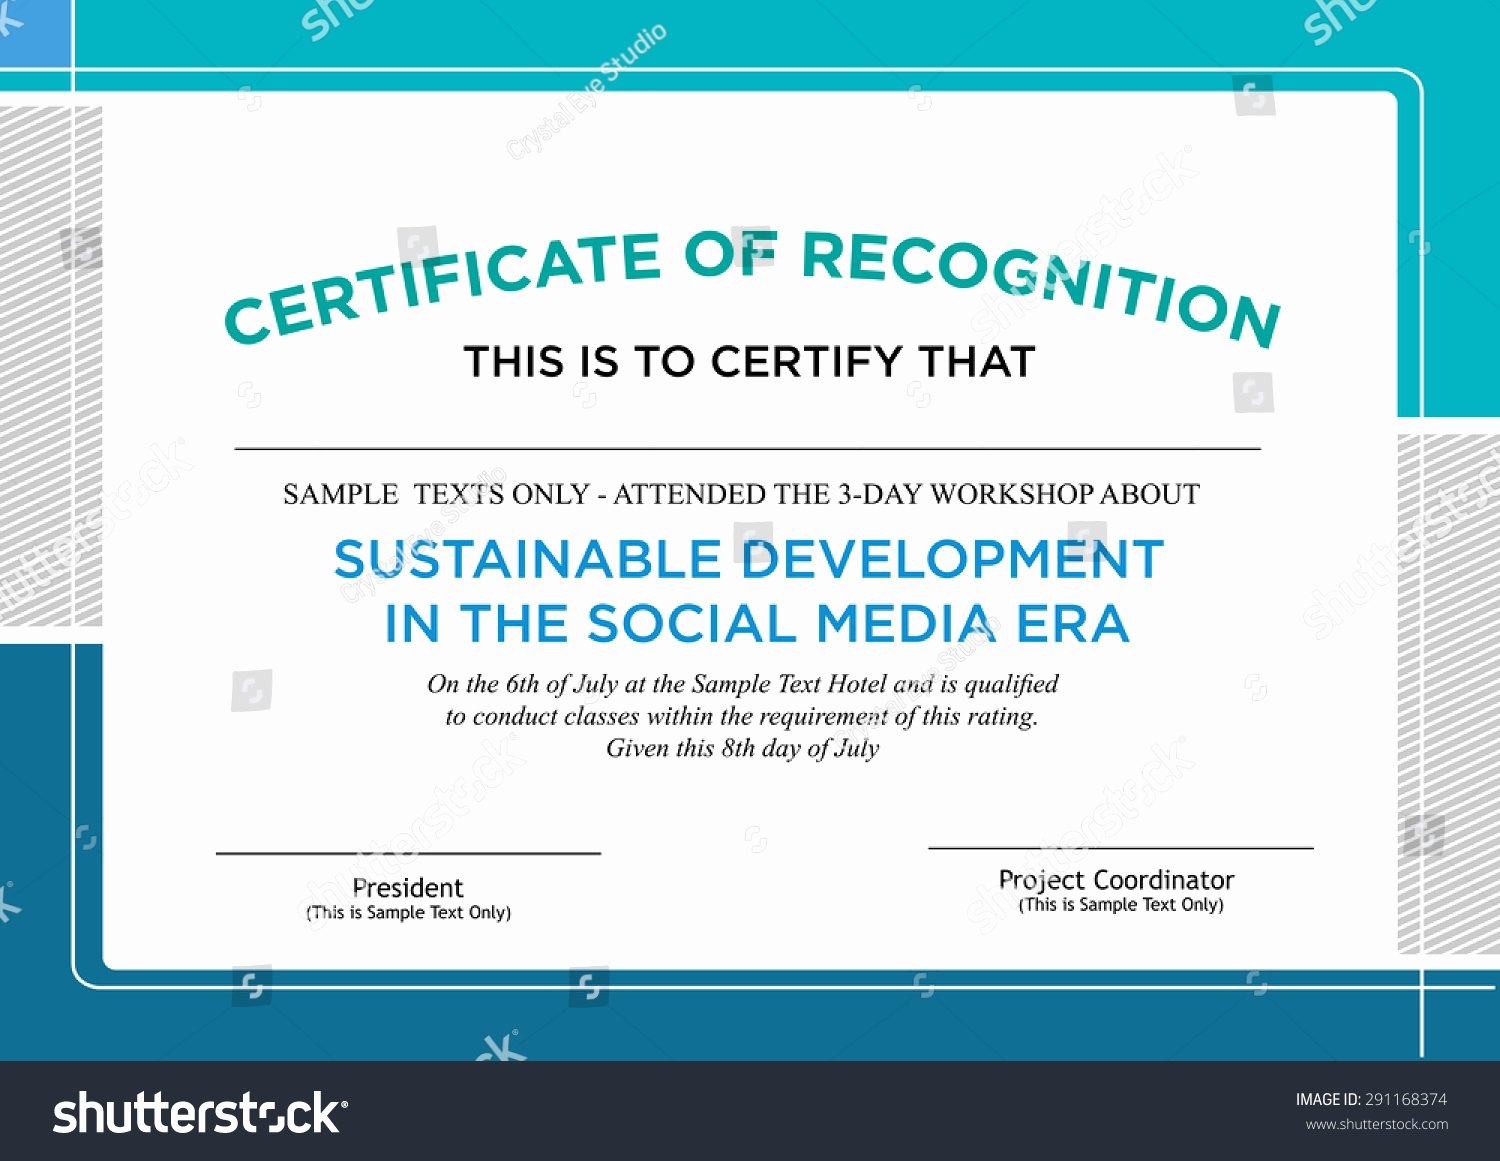 Continuing Education Certificate Template New Certificate Recognition formal Style Design Editable Stock